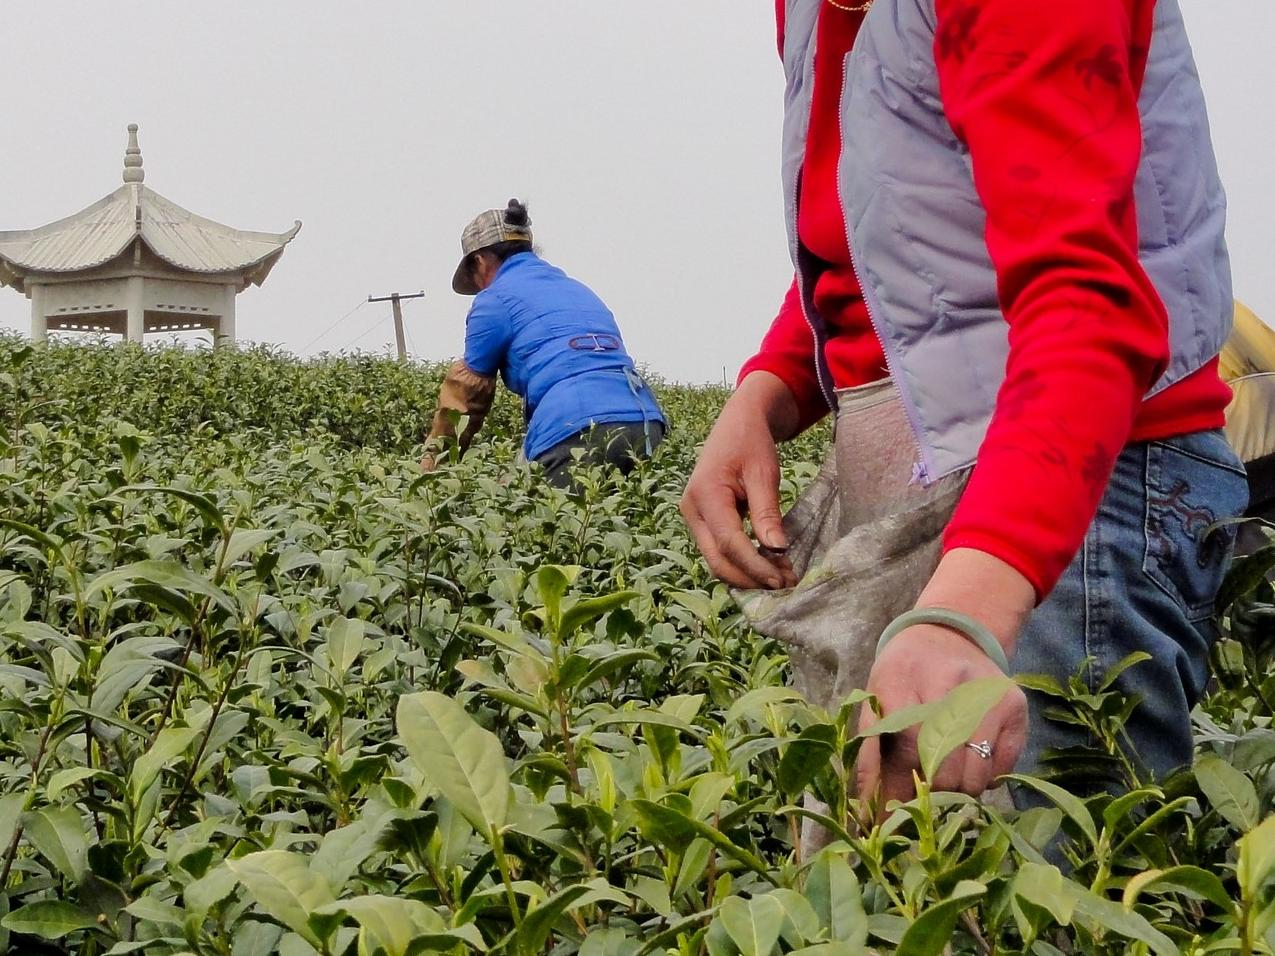 Tea harvesting in China © UTZ Certified